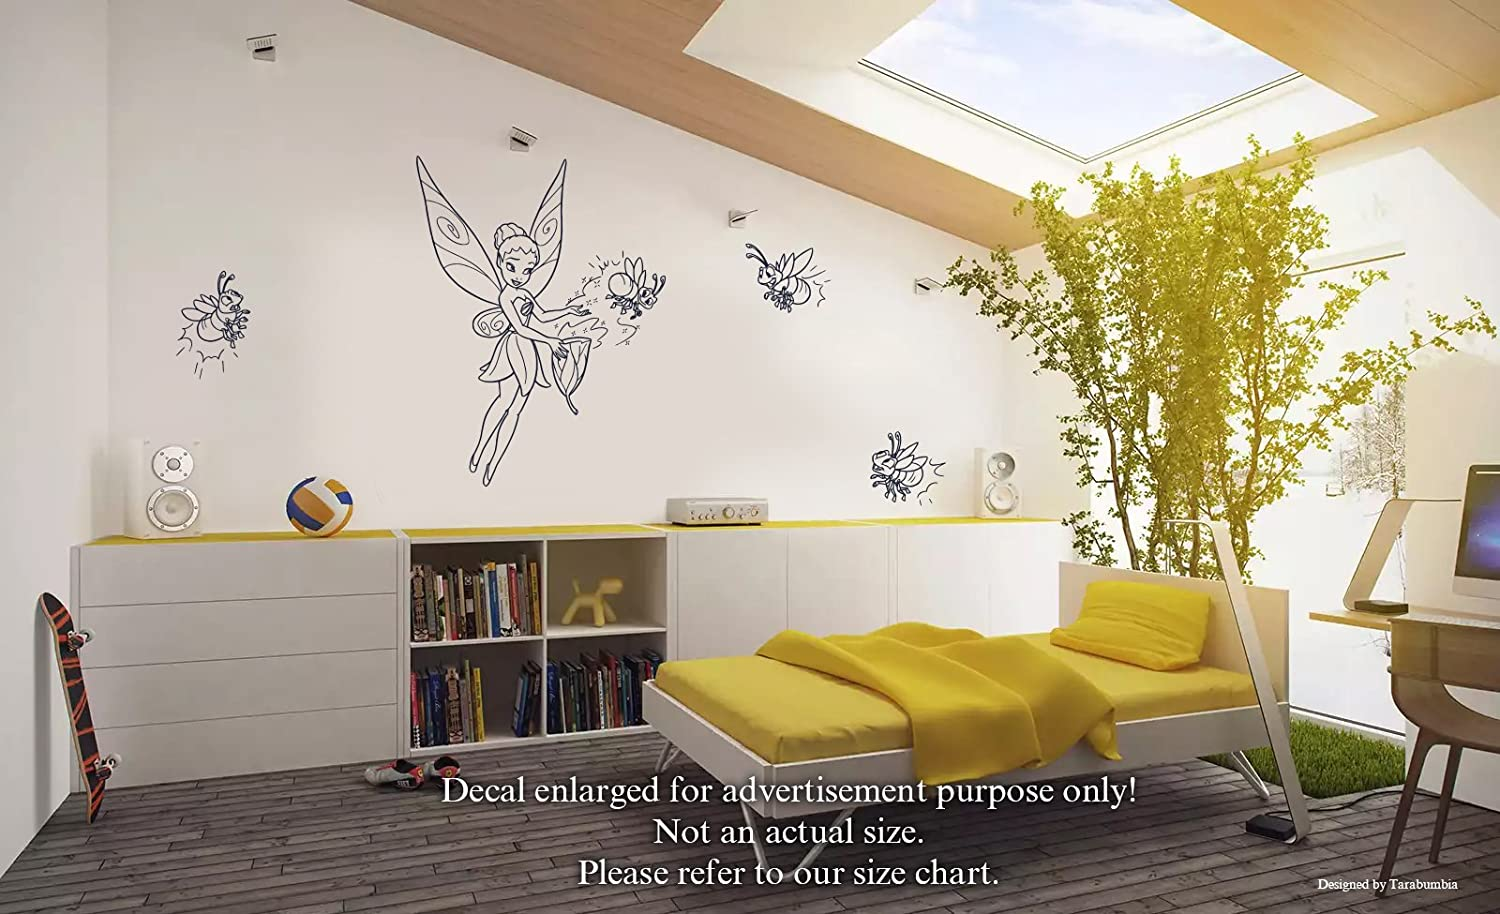 Amazon Com Tinker Bell Wall Decals Magic Fairy Iridessa And Fireflies Stickers Decorative Design Ideas For Your Home Or Office Walls Removable Vinyl Murals Ec 0504 Arts Crafts Sewing